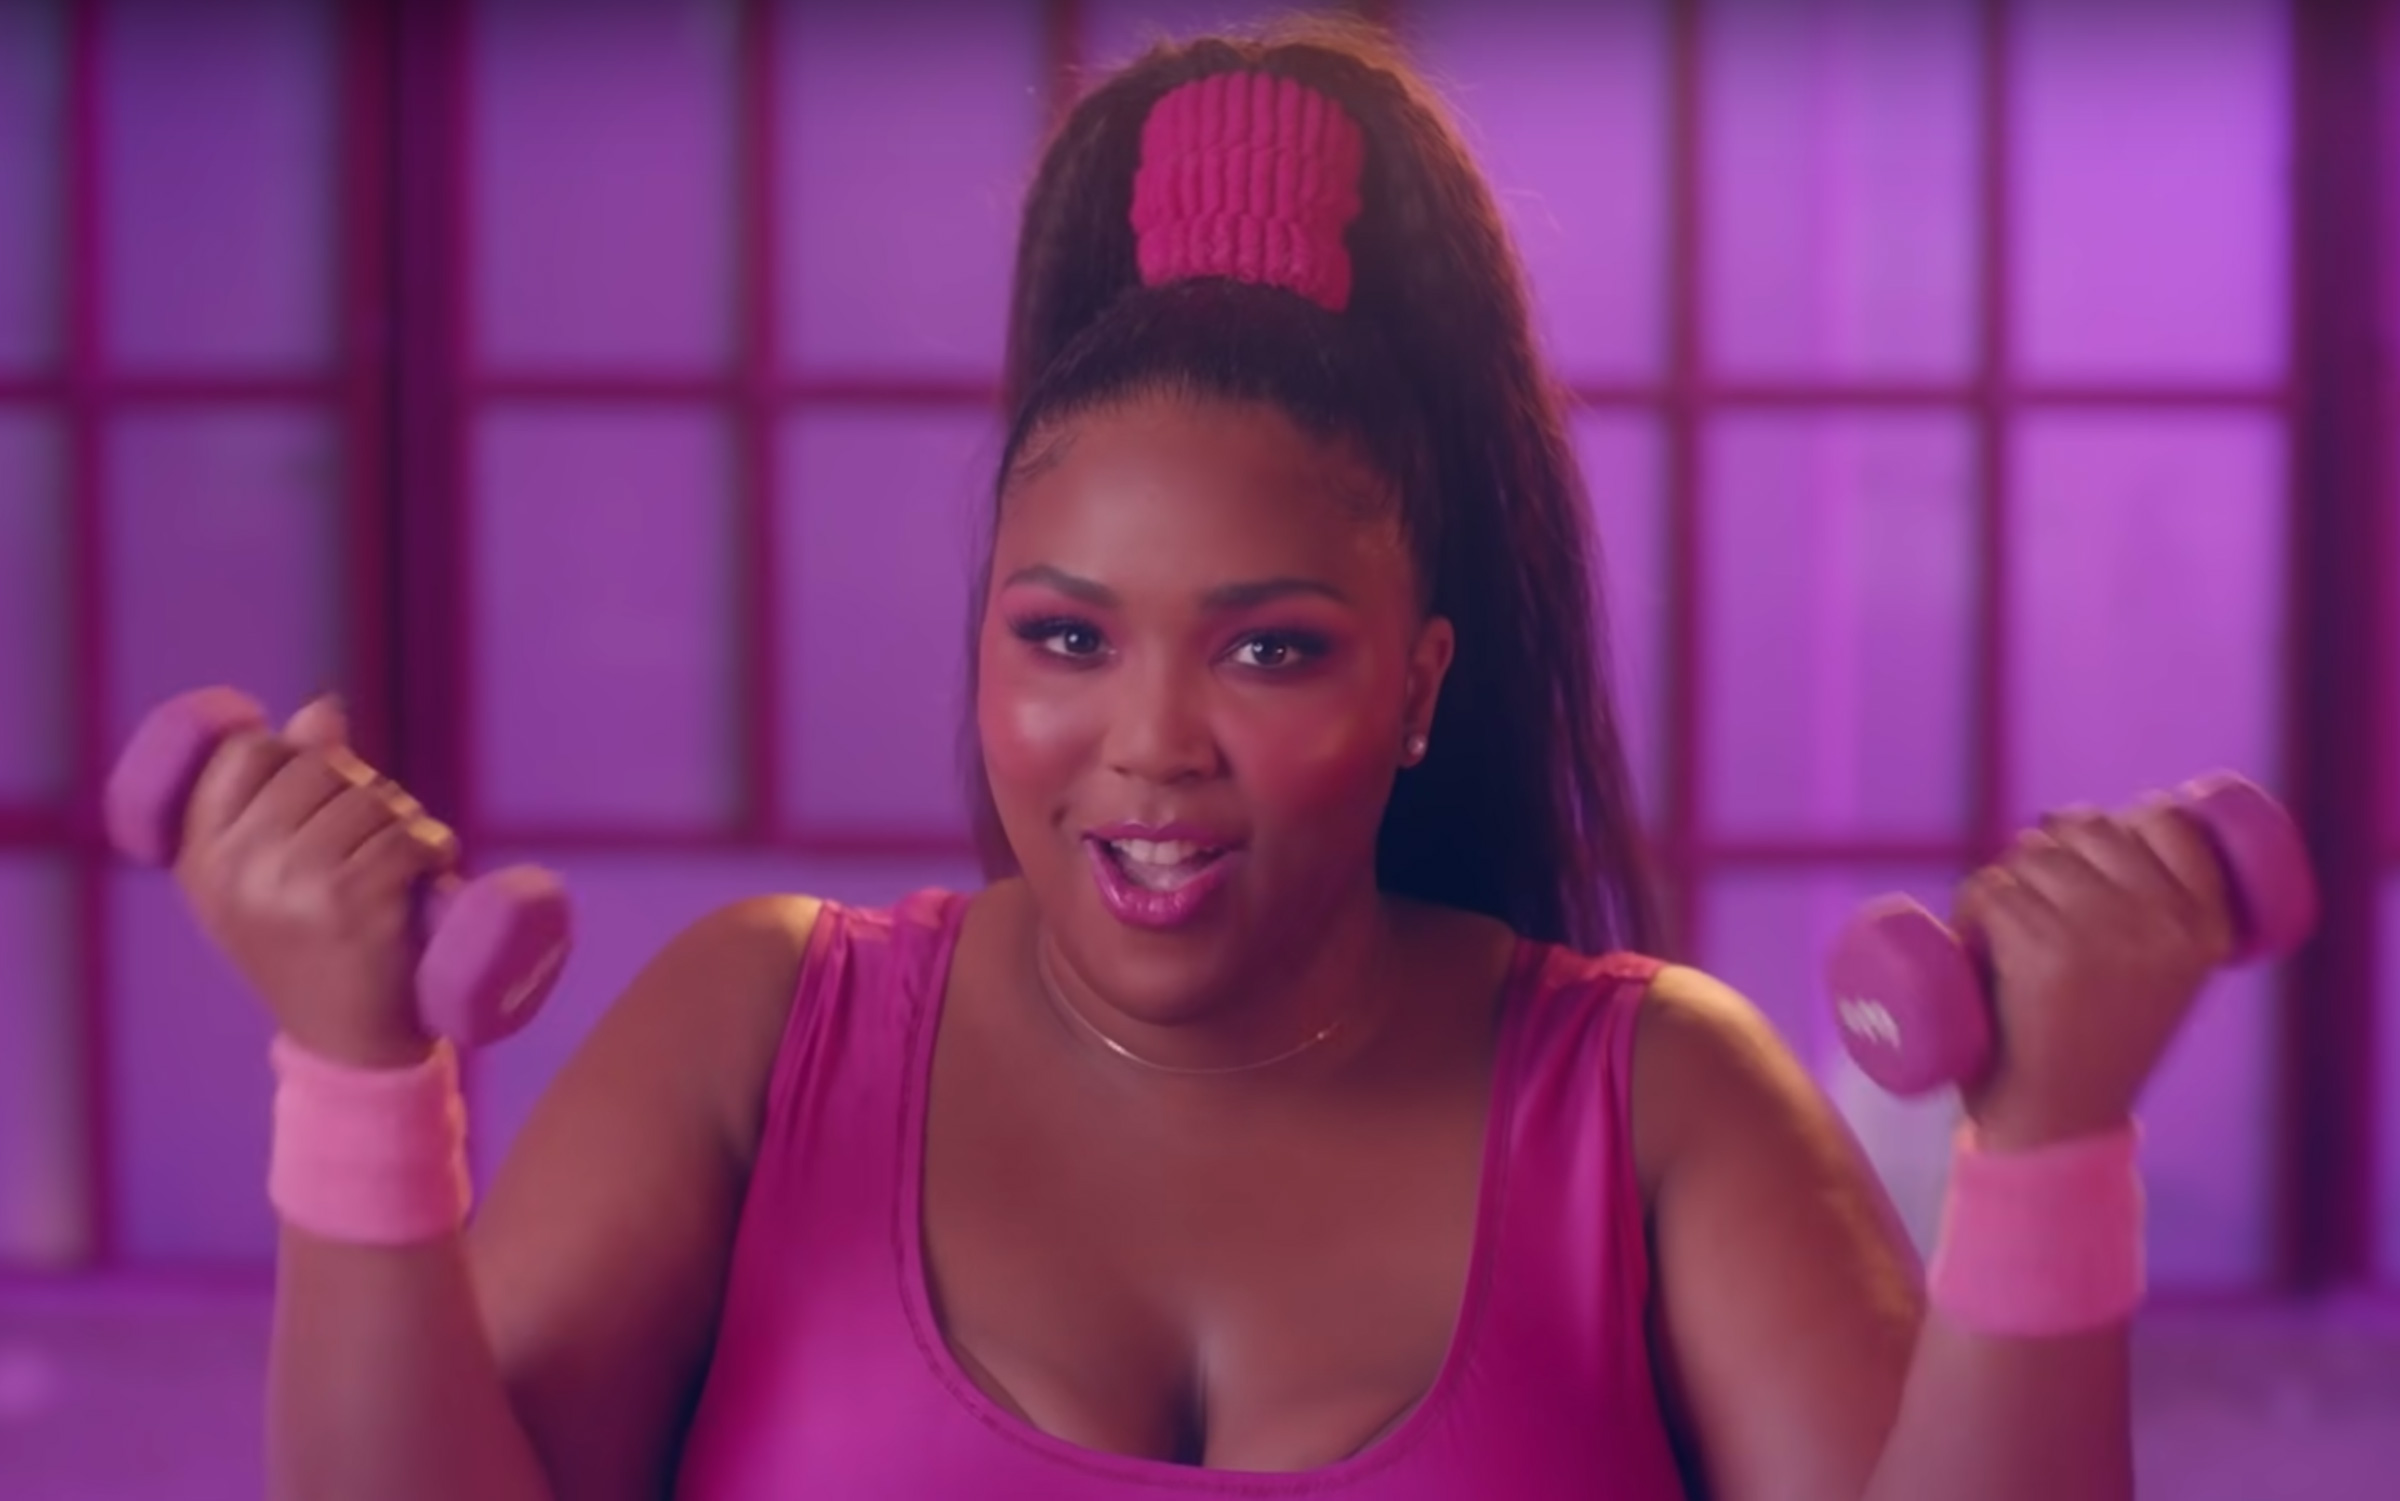 Lizzo, a plus-size Black woman musician, wears a high ponytail with a pink aerobic jumpsuit, in the Juice video